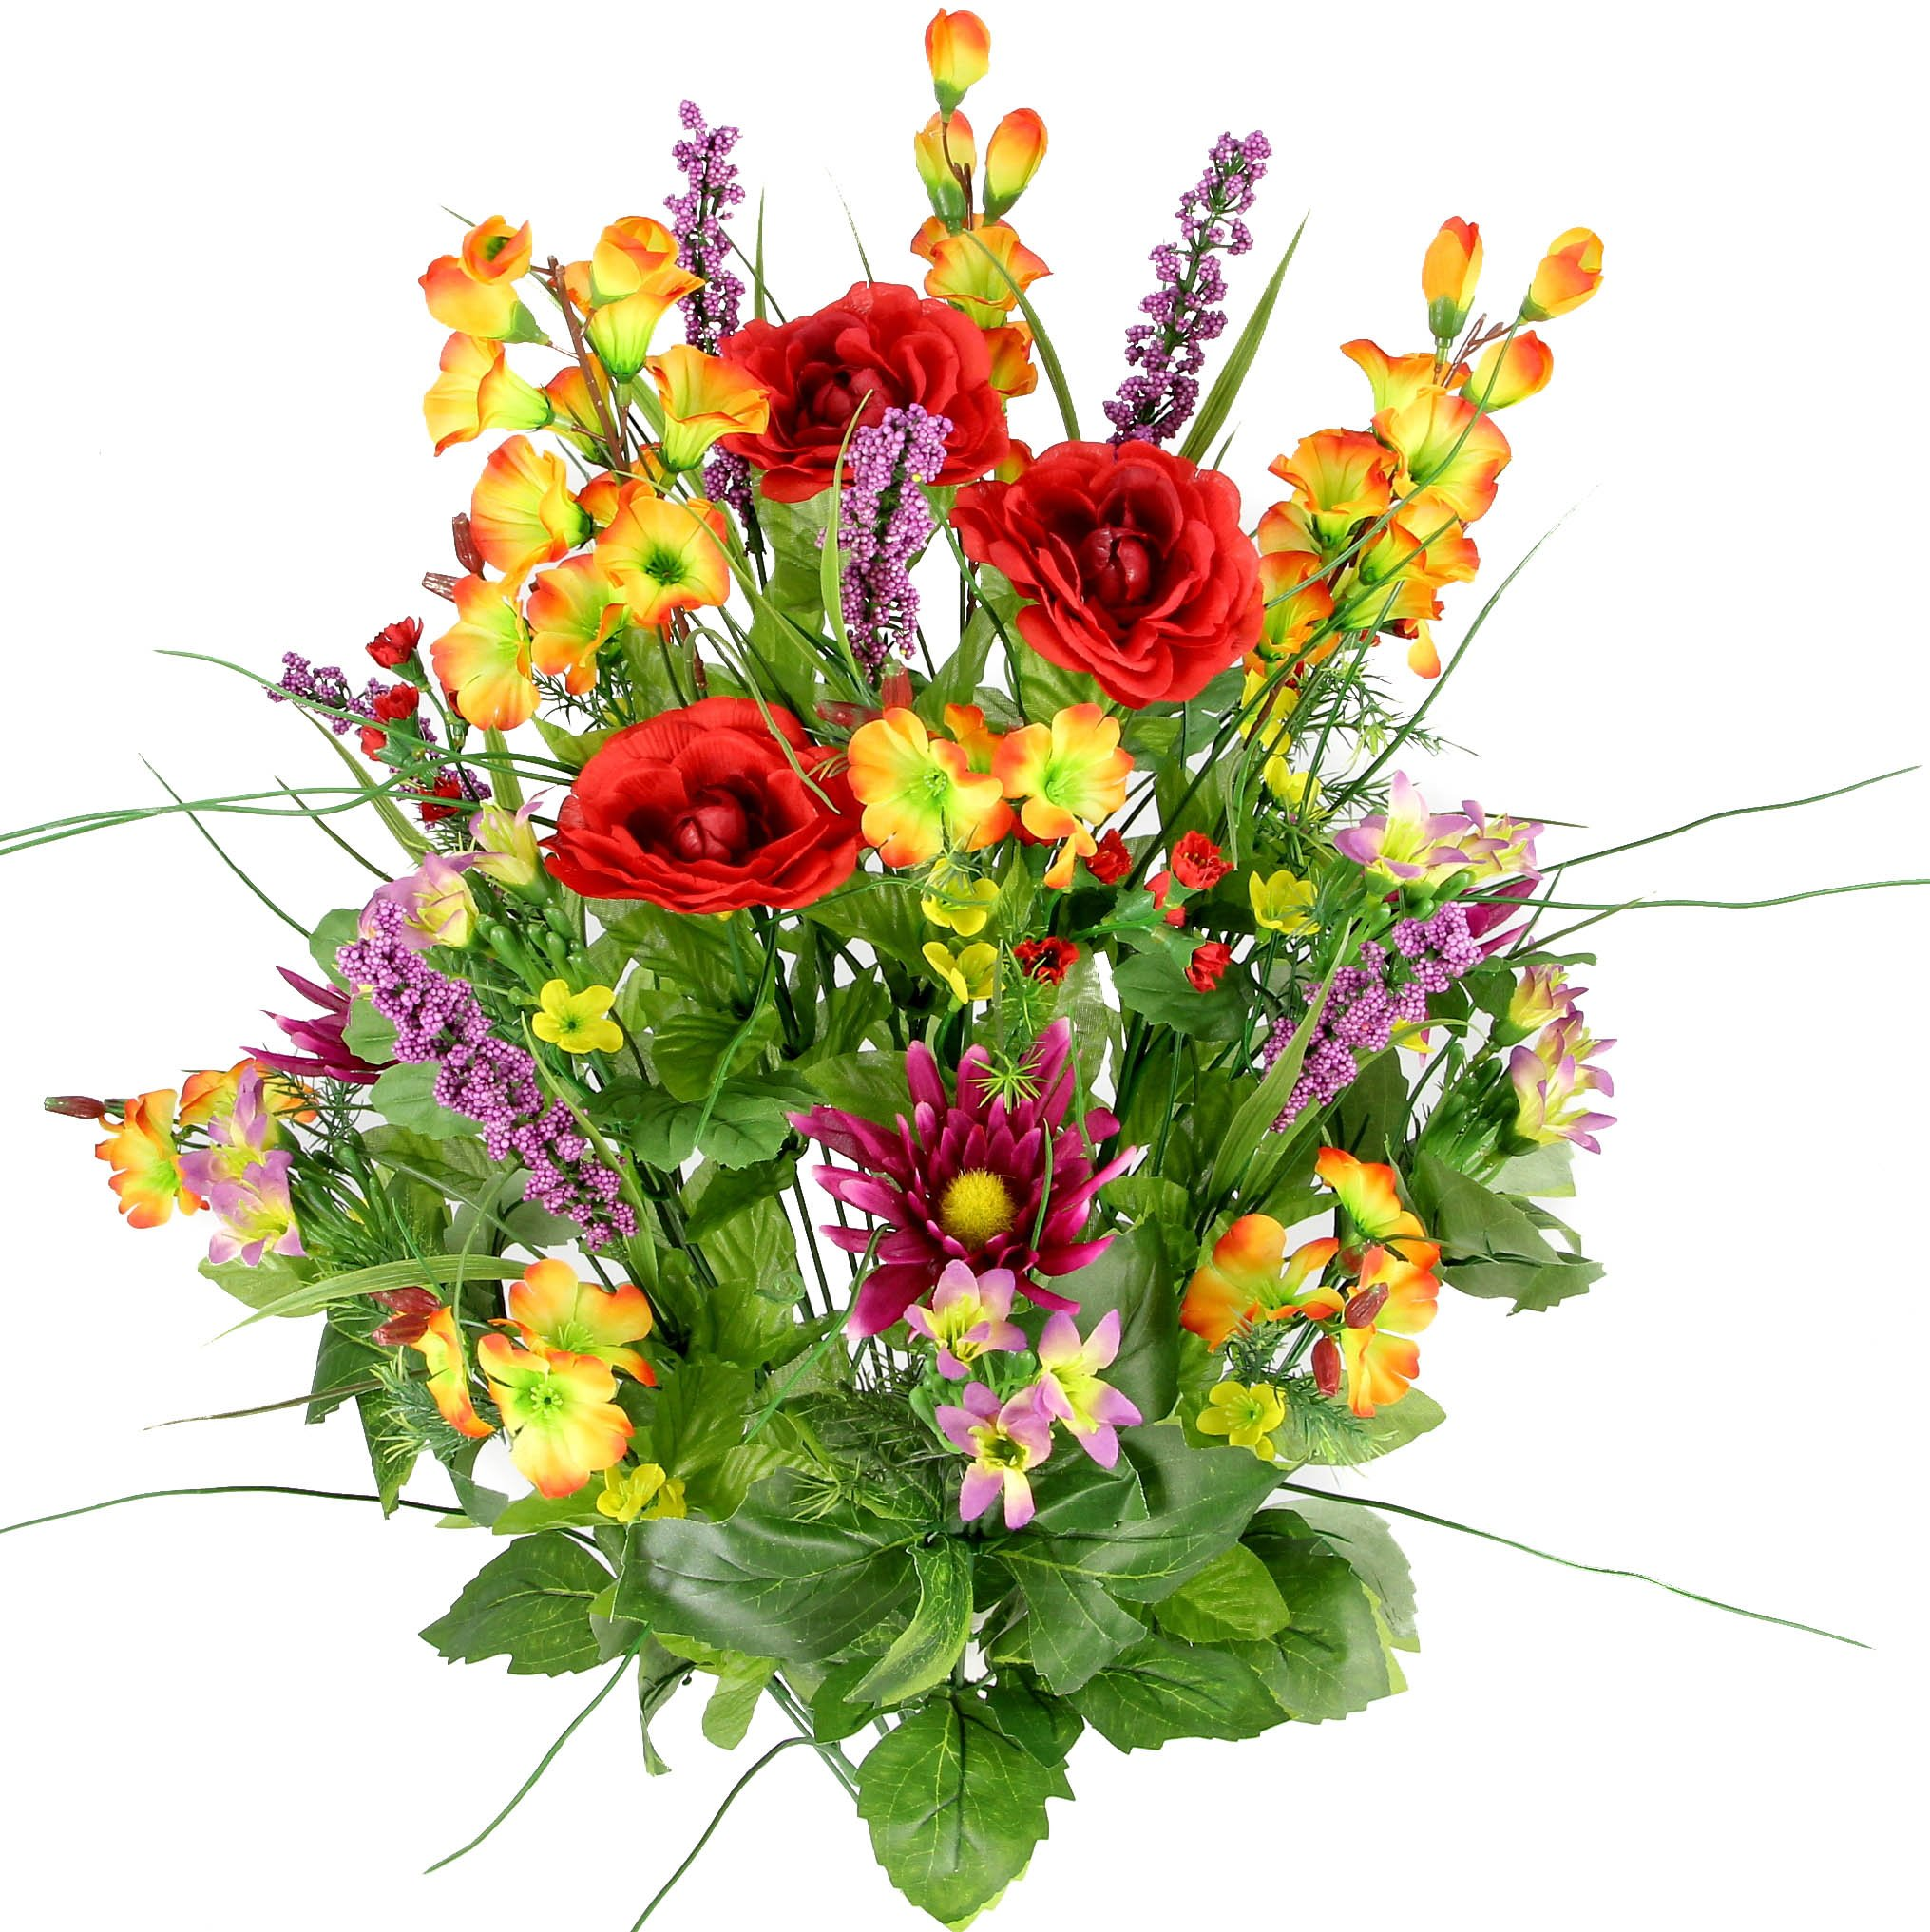 Artificial-Dahlia-Morning-Glory-and-Ranunculus-and-Blossom-Fillers-Mixed-Bush-30-Stems-for-Home-Wedding-Restaurant-and-Office-Decoration-Arrangement-RedOrangeYellowLilac